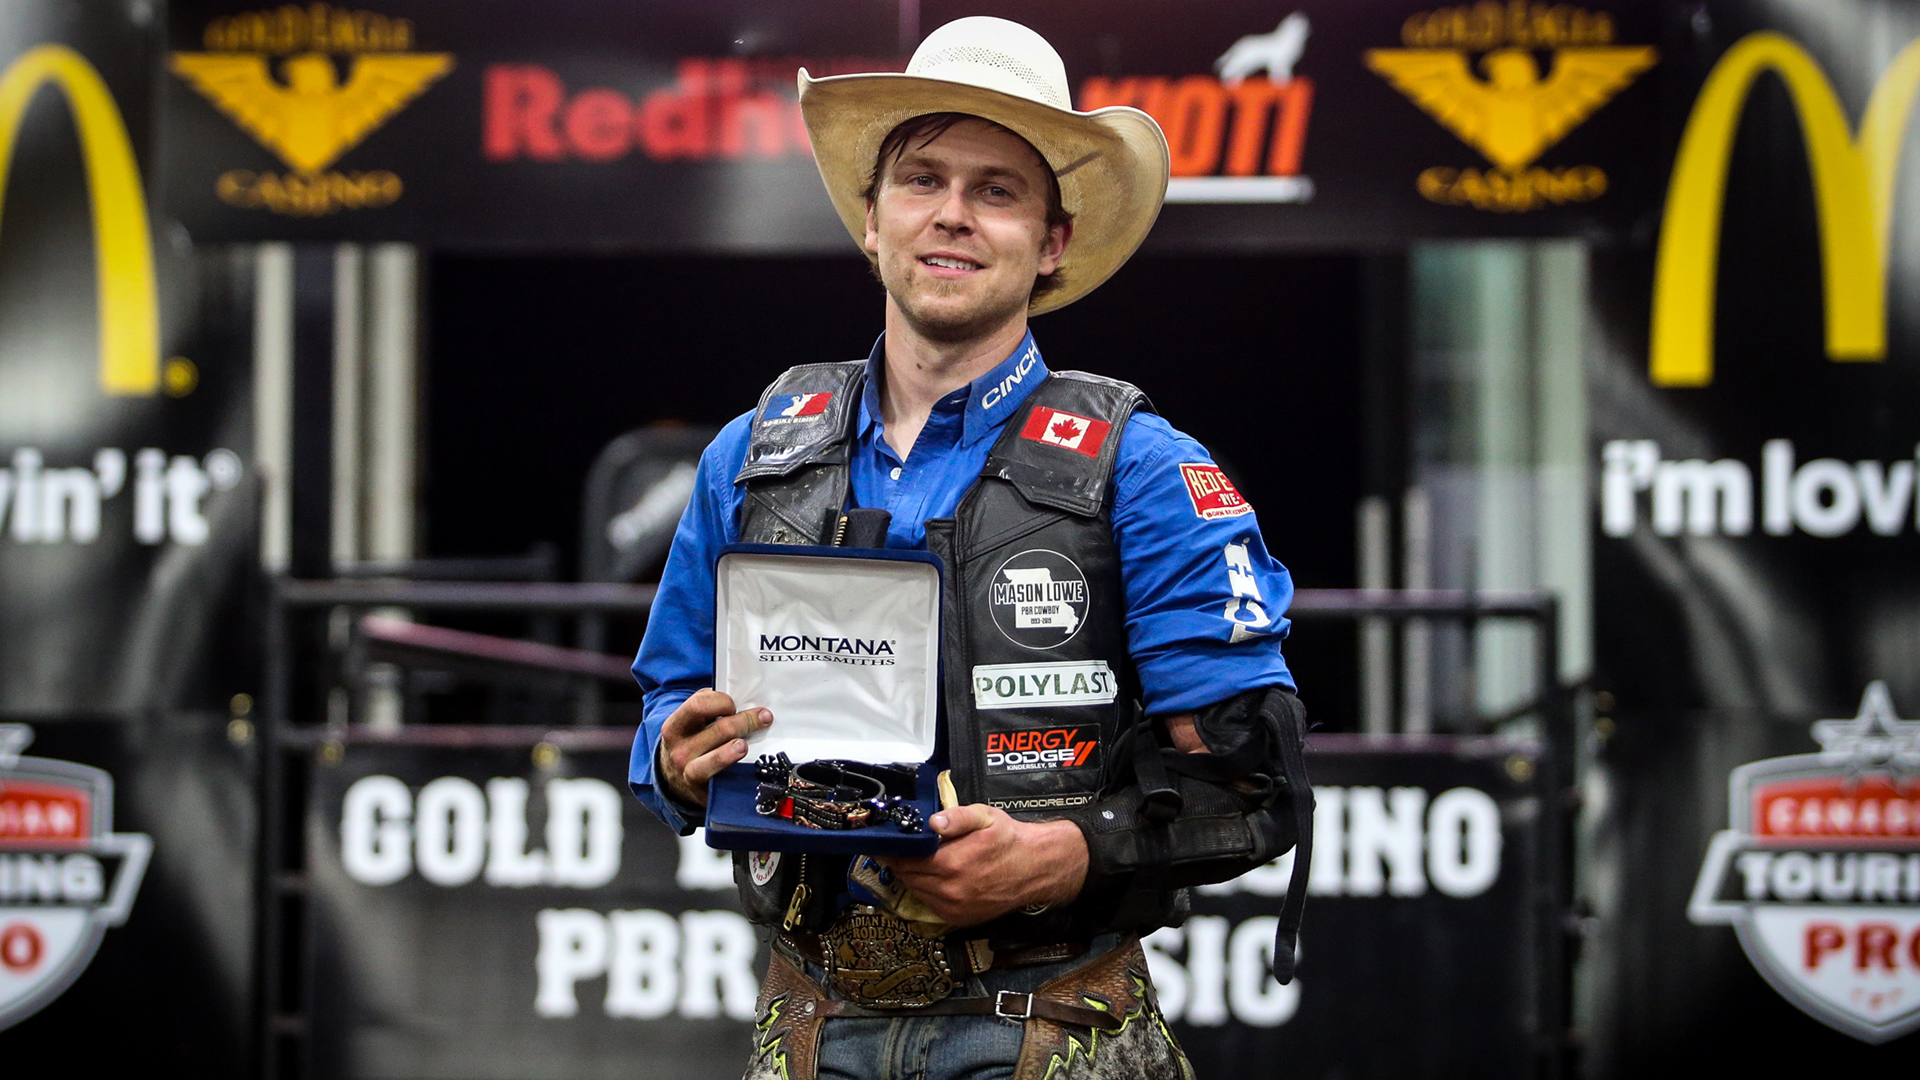 Buttar helps his cause for Tulsa with third PBR Canada event win of 2019